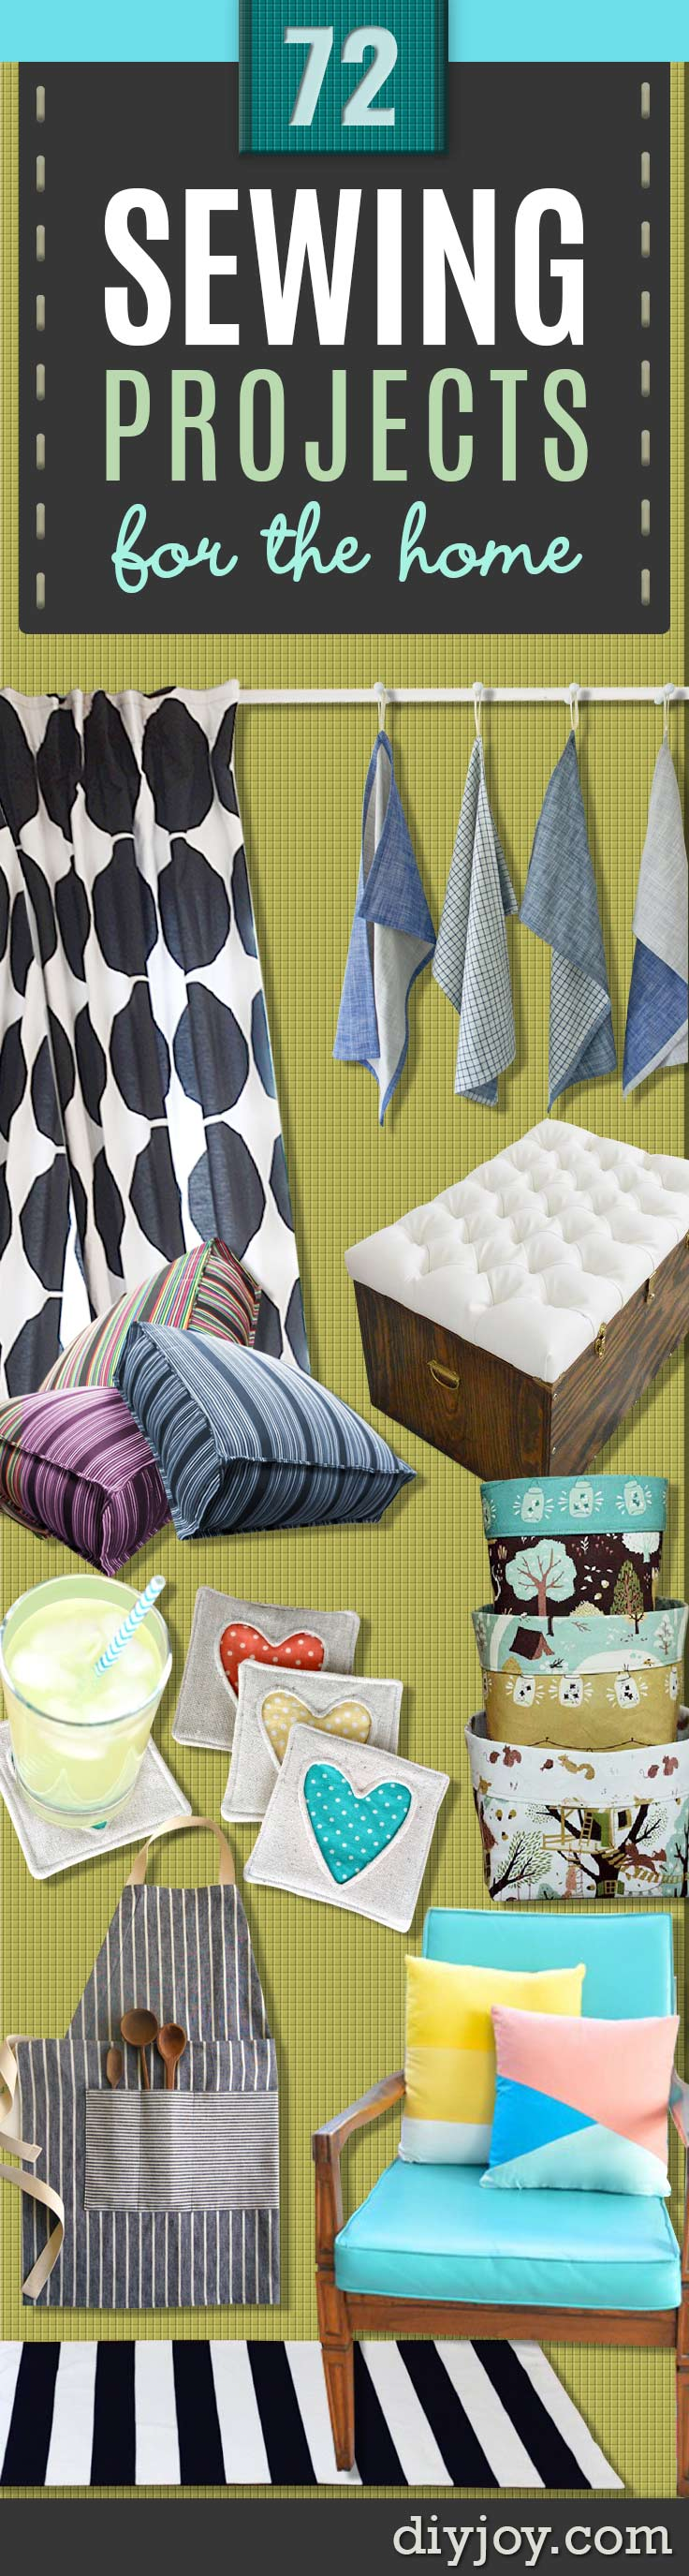 Sewing Projects for The Home - Free DIY Sewing Patterns, Easy Ideas and Tutorials for Curtains, Upholstery, Napkins, Pillows and Decor #sewing #sewingideas #homedecor